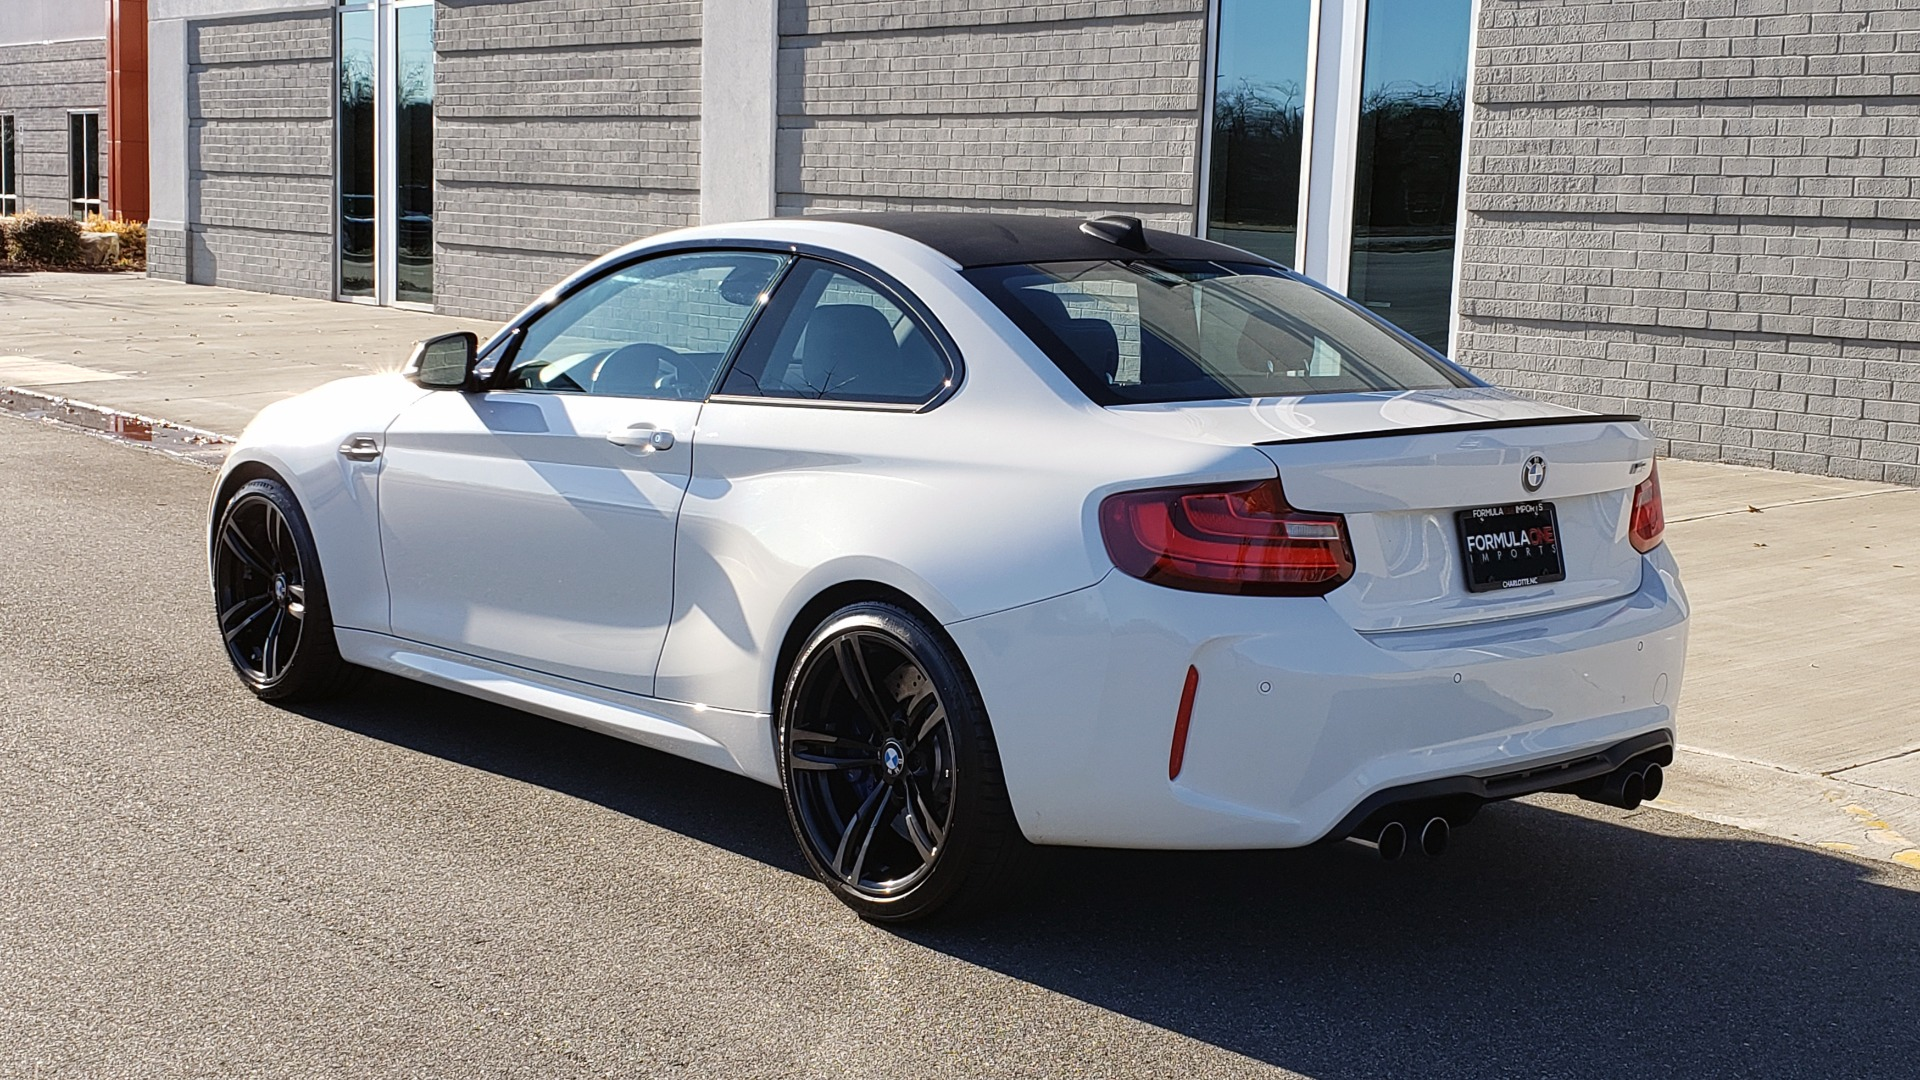 Used 2017 BMW M2 COUPE / MANUAL / EXEC PKG / NAV / WIFI / PDC / REARVIEW for sale Sold at Formula Imports in Charlotte NC 28227 4